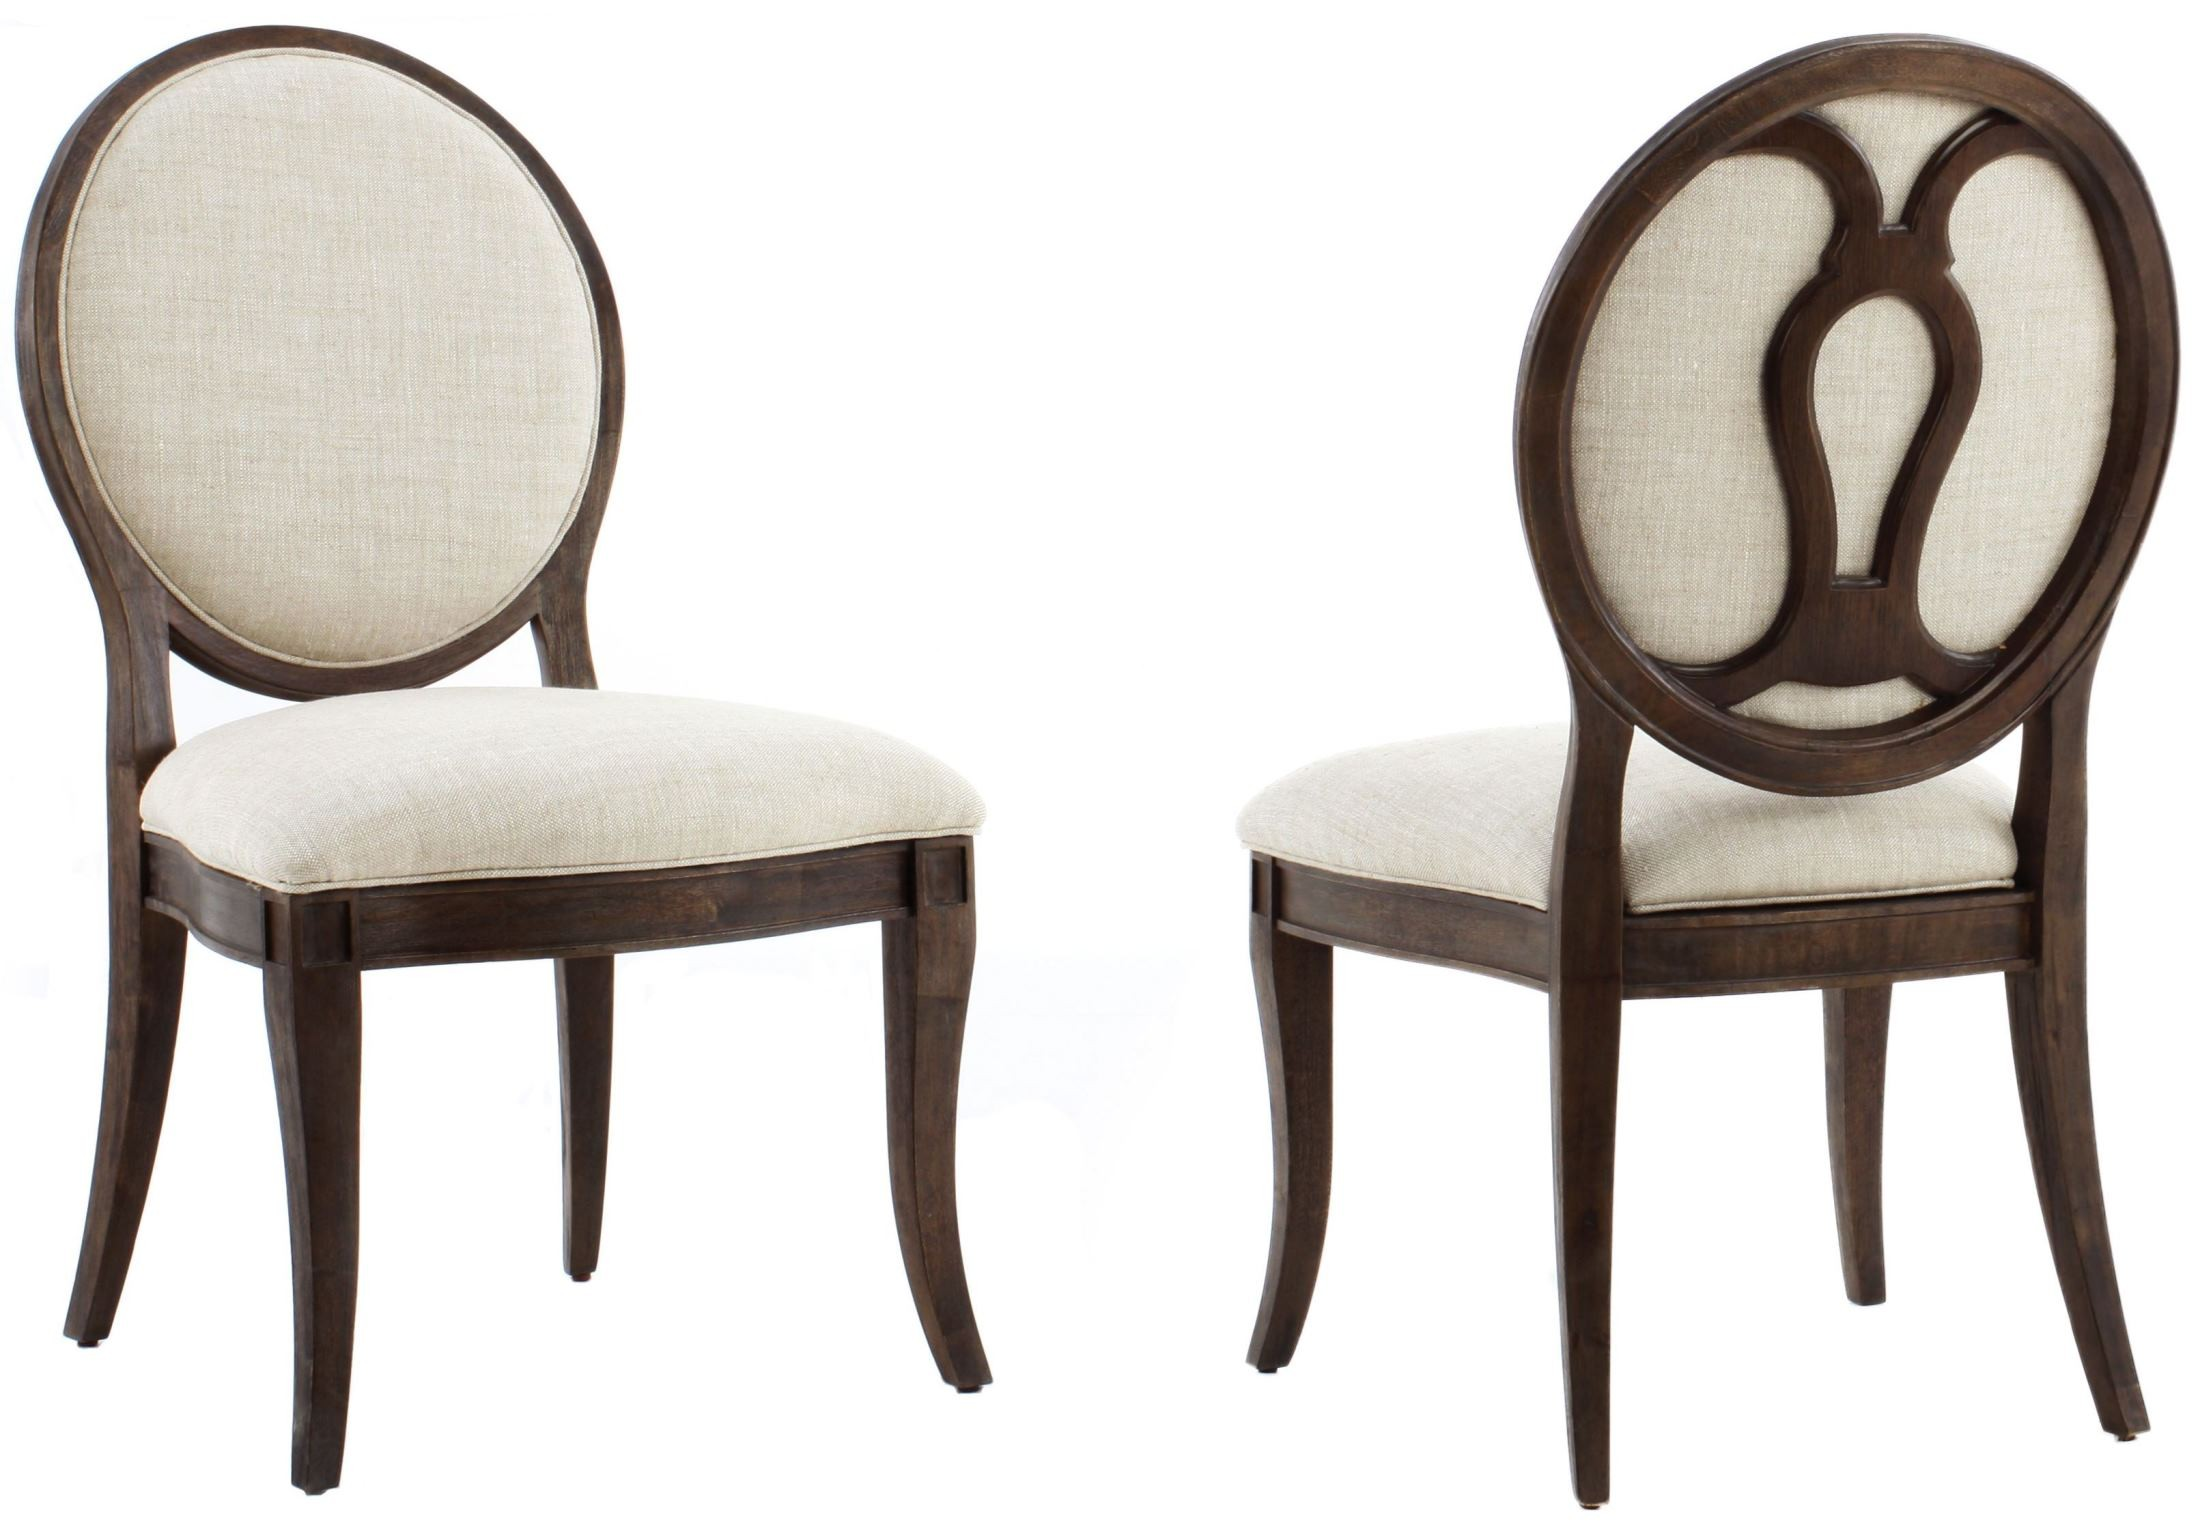 St Germain Oval Back Side Chair Set of 2 1513 A R T